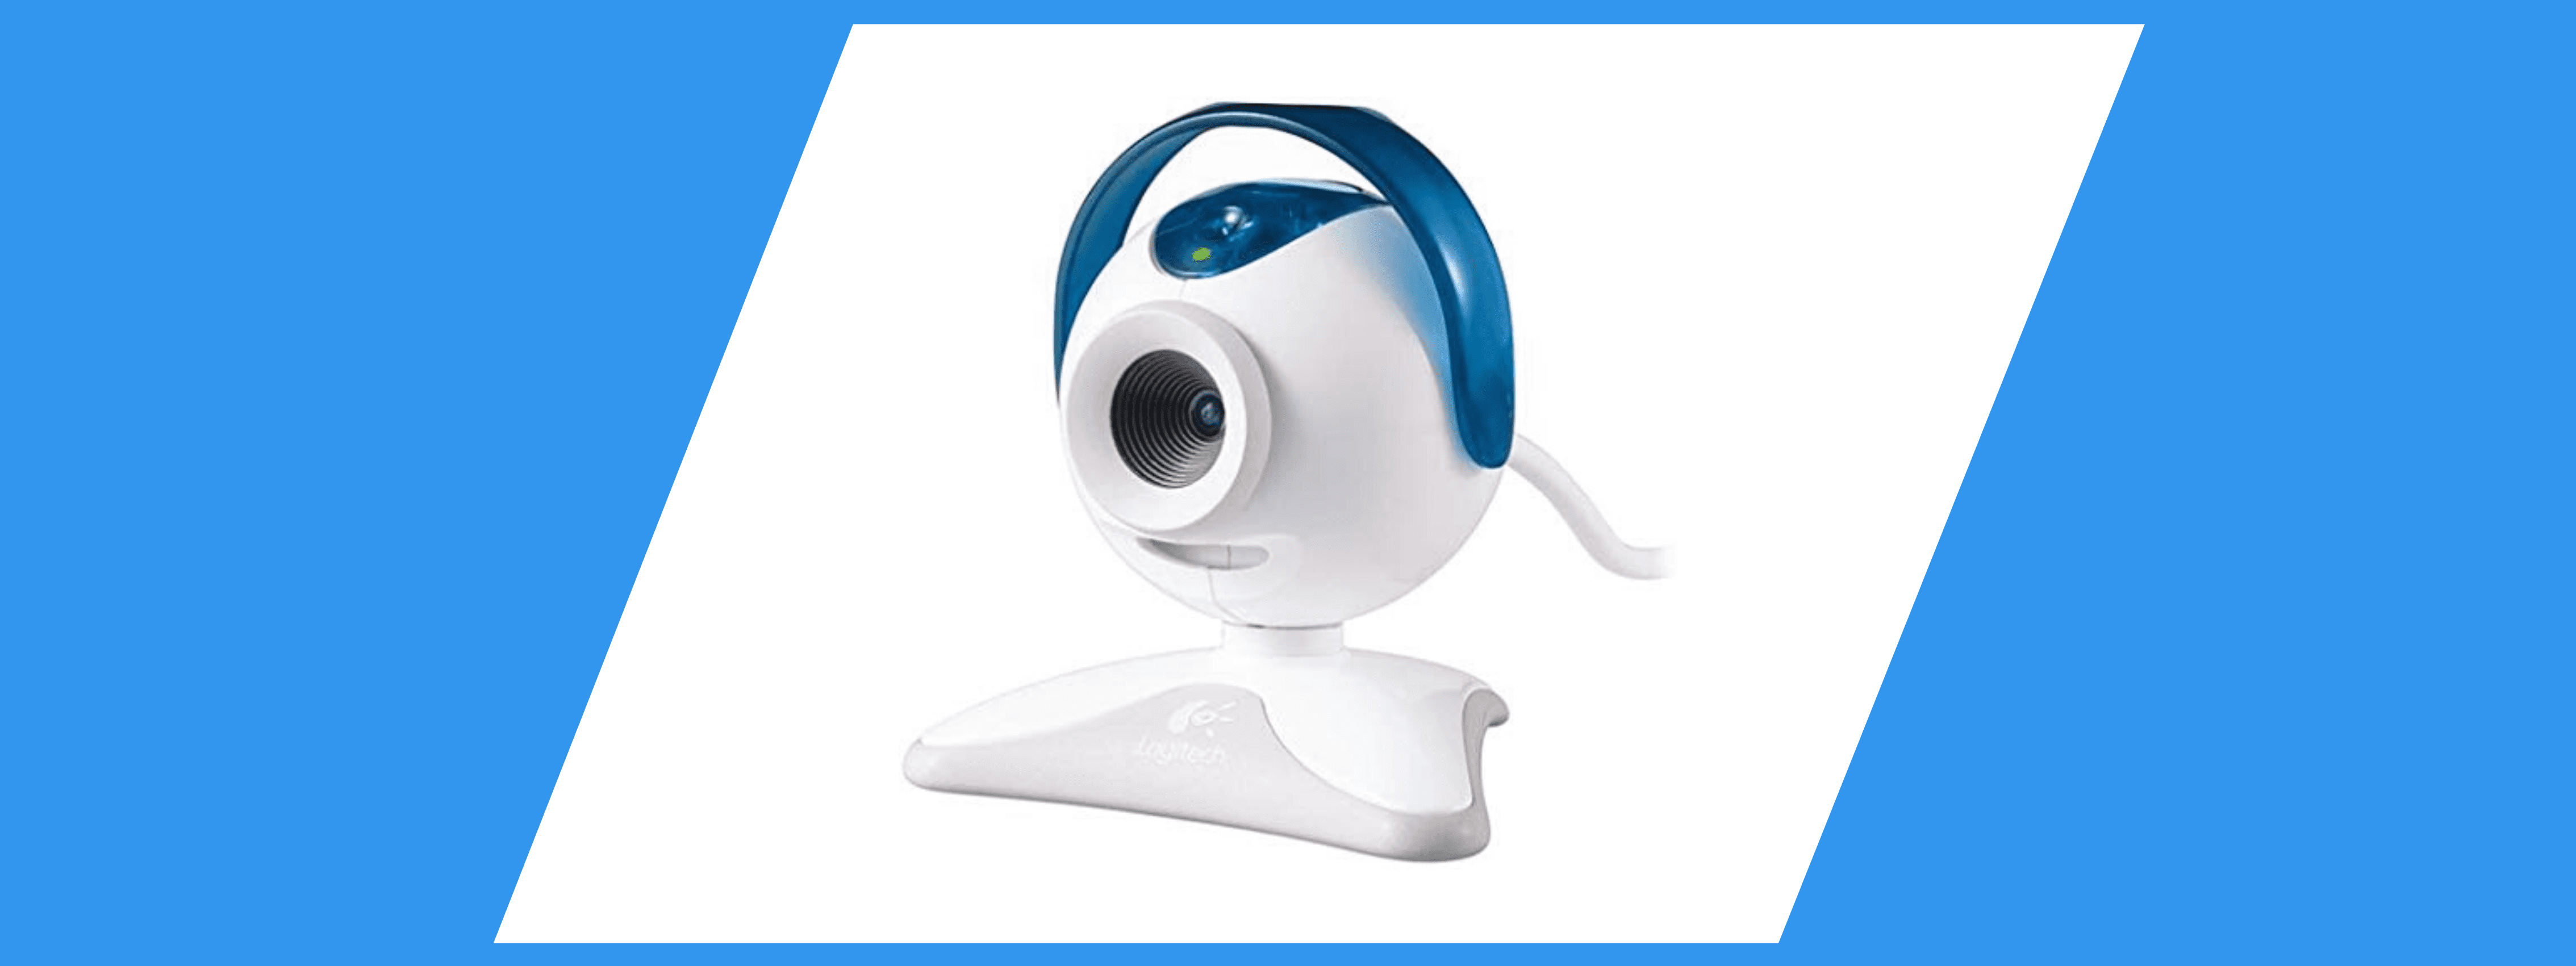 Logitech Quickcam Zoom Software Driver Download